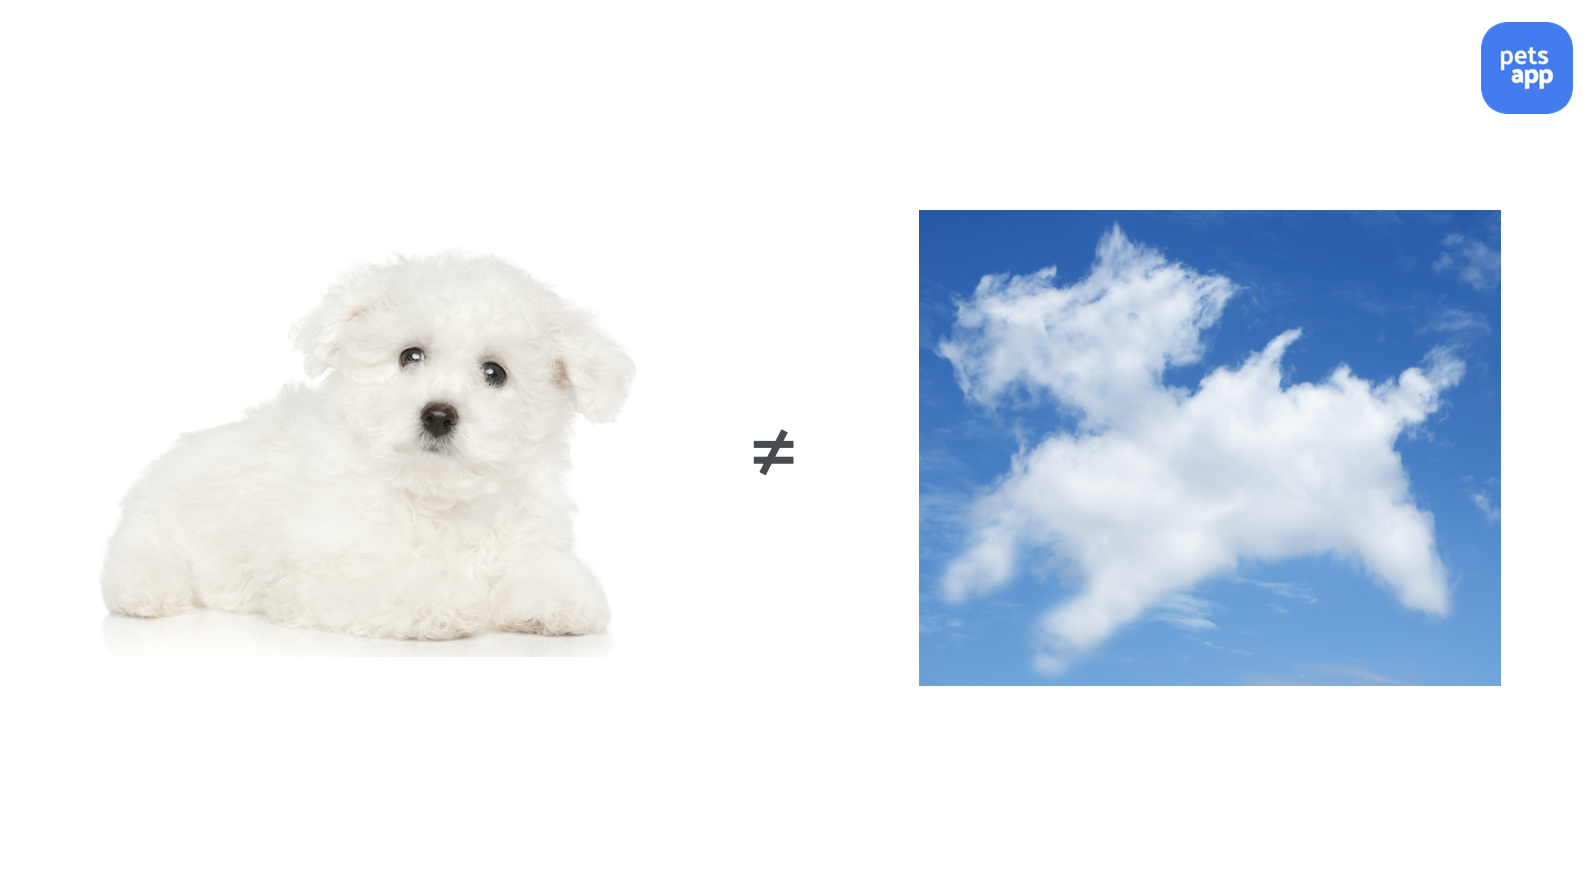 A Practitioner's Guide - Dog and cloud